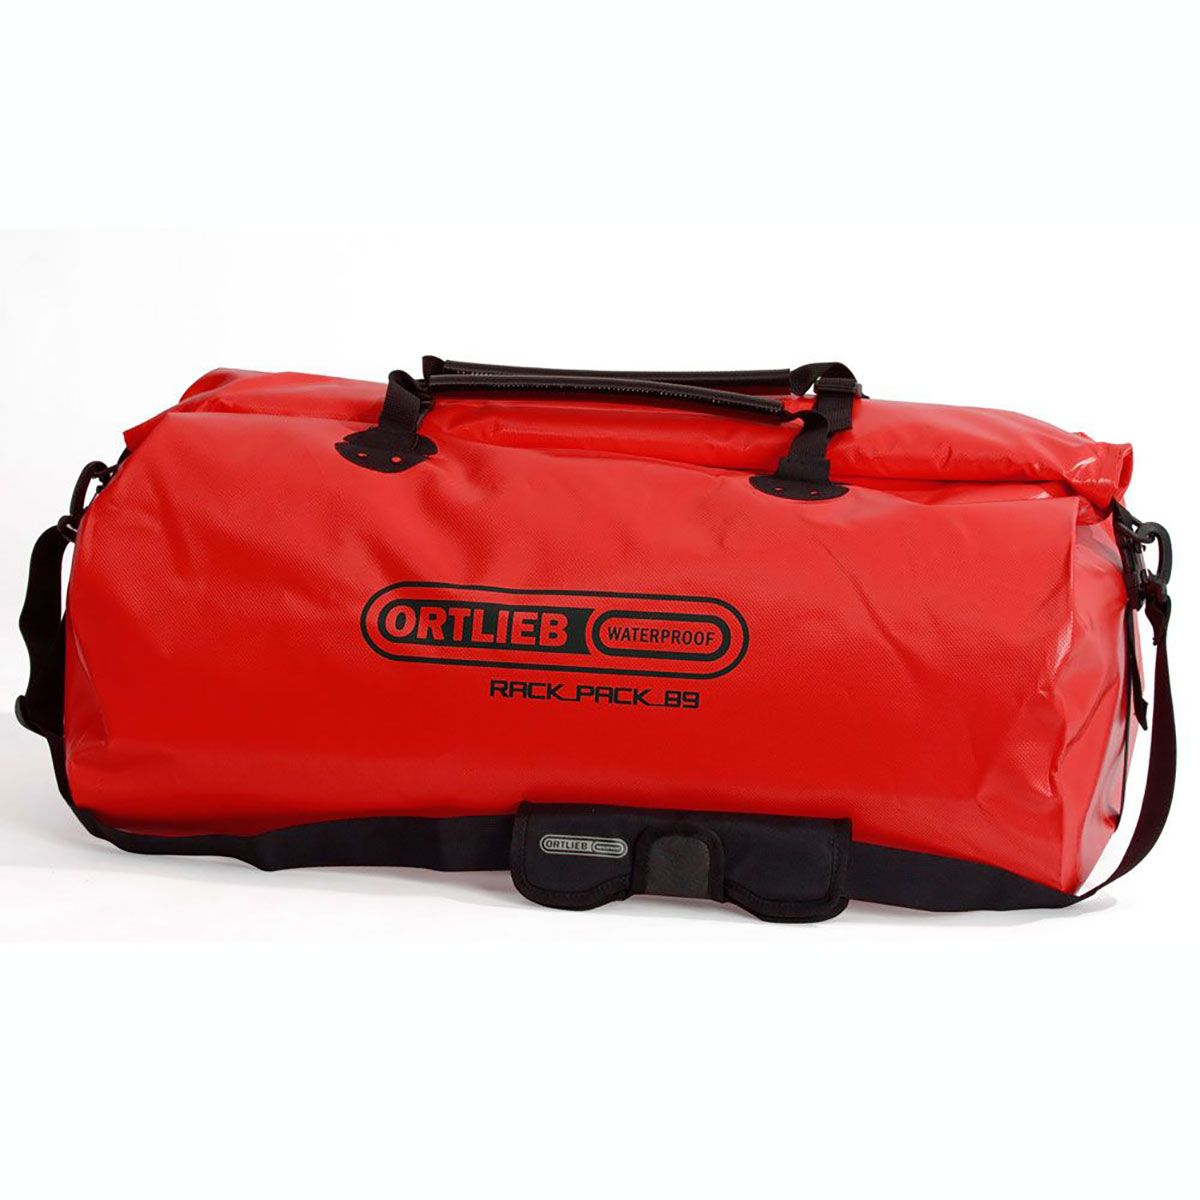 Rack-Pack 89 L Travel Bag